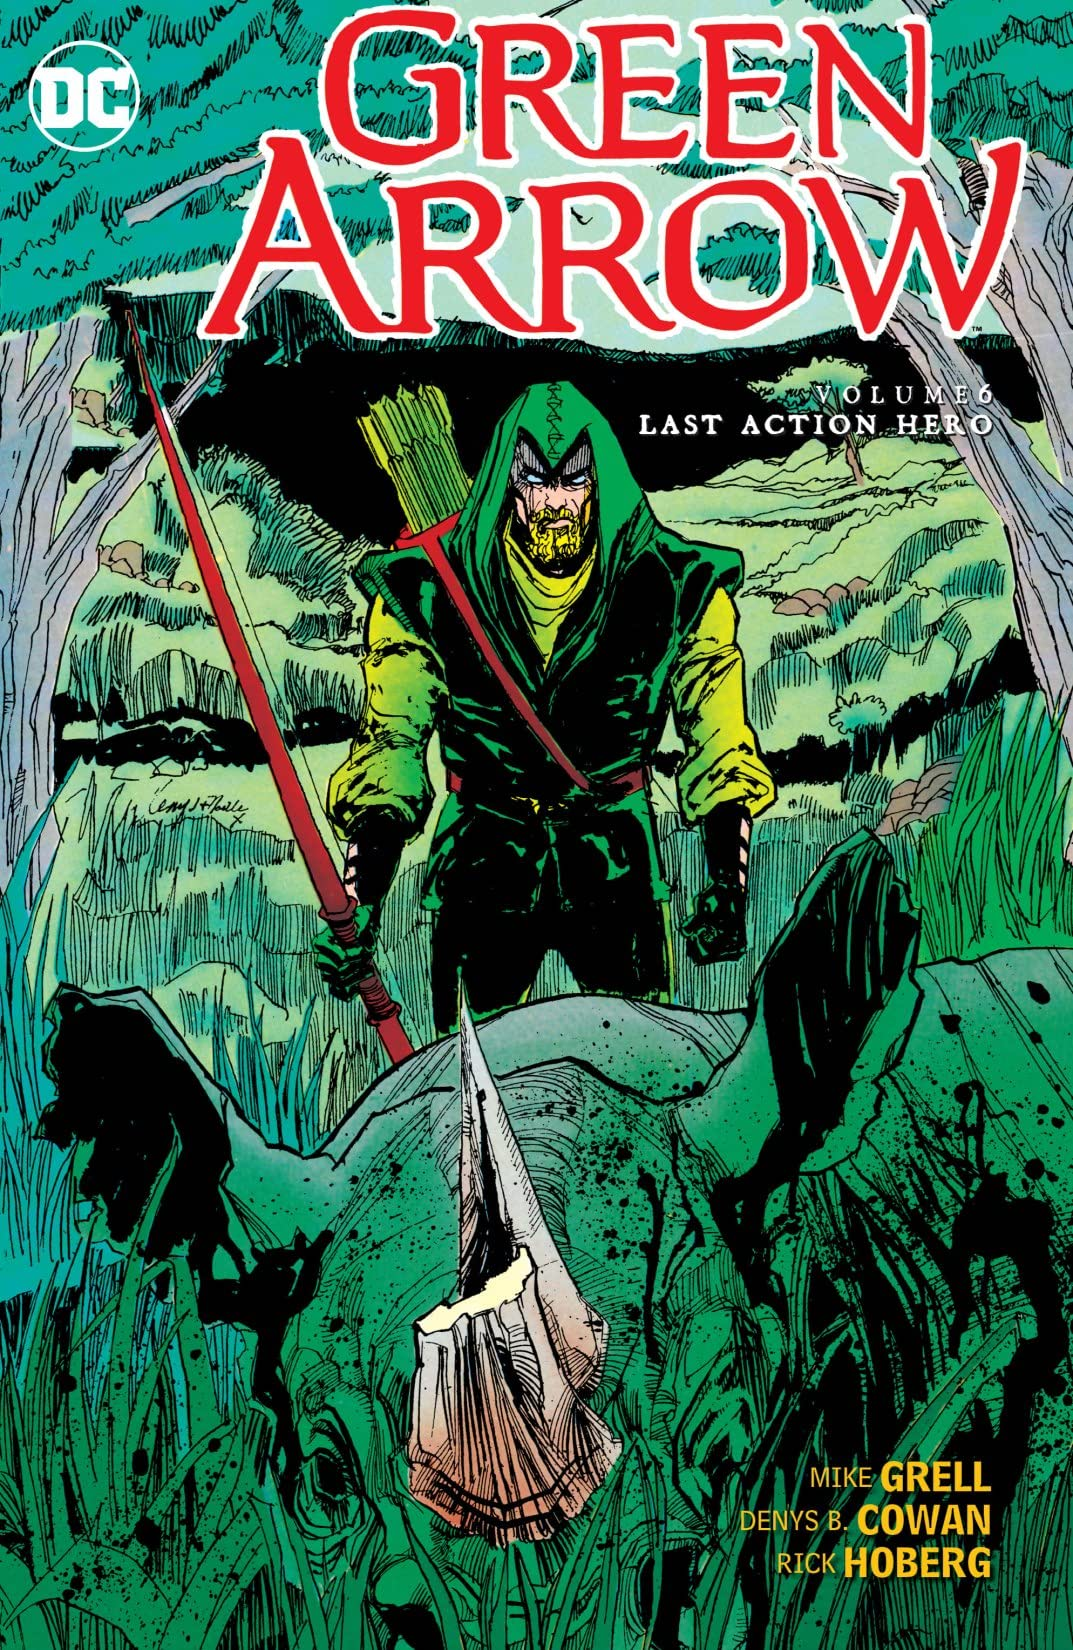 Green Arrow (1988-1998) Vol. 6: Last Action Hero